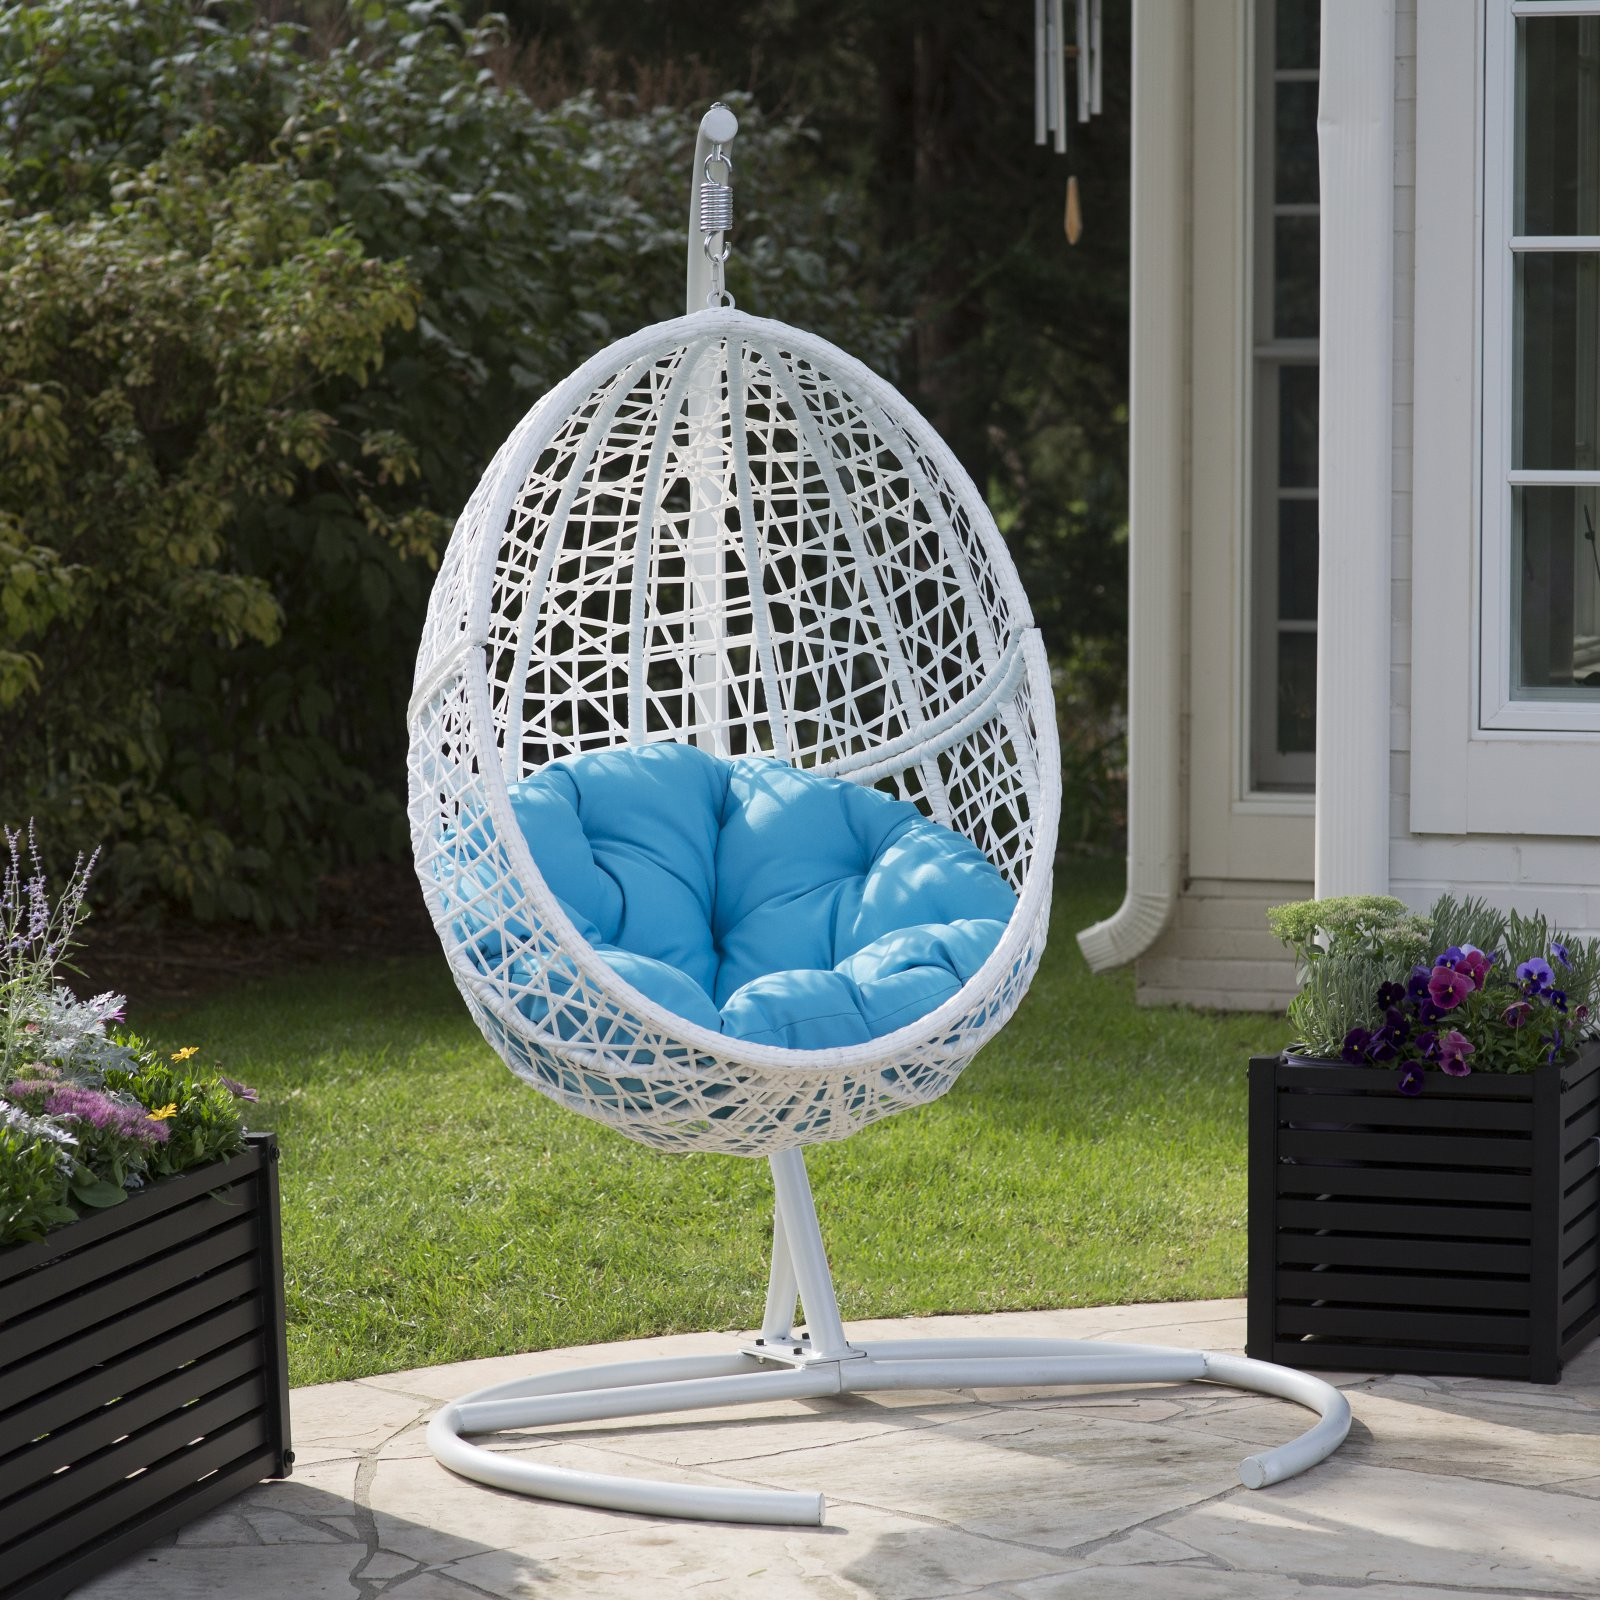 Details about Belham Living Resin Wicker Blanca Hanging Egg Chair with Cushion Color Option a & Belham Living Resin Wicker Blanca Hanging Egg Chair with Cushion ...